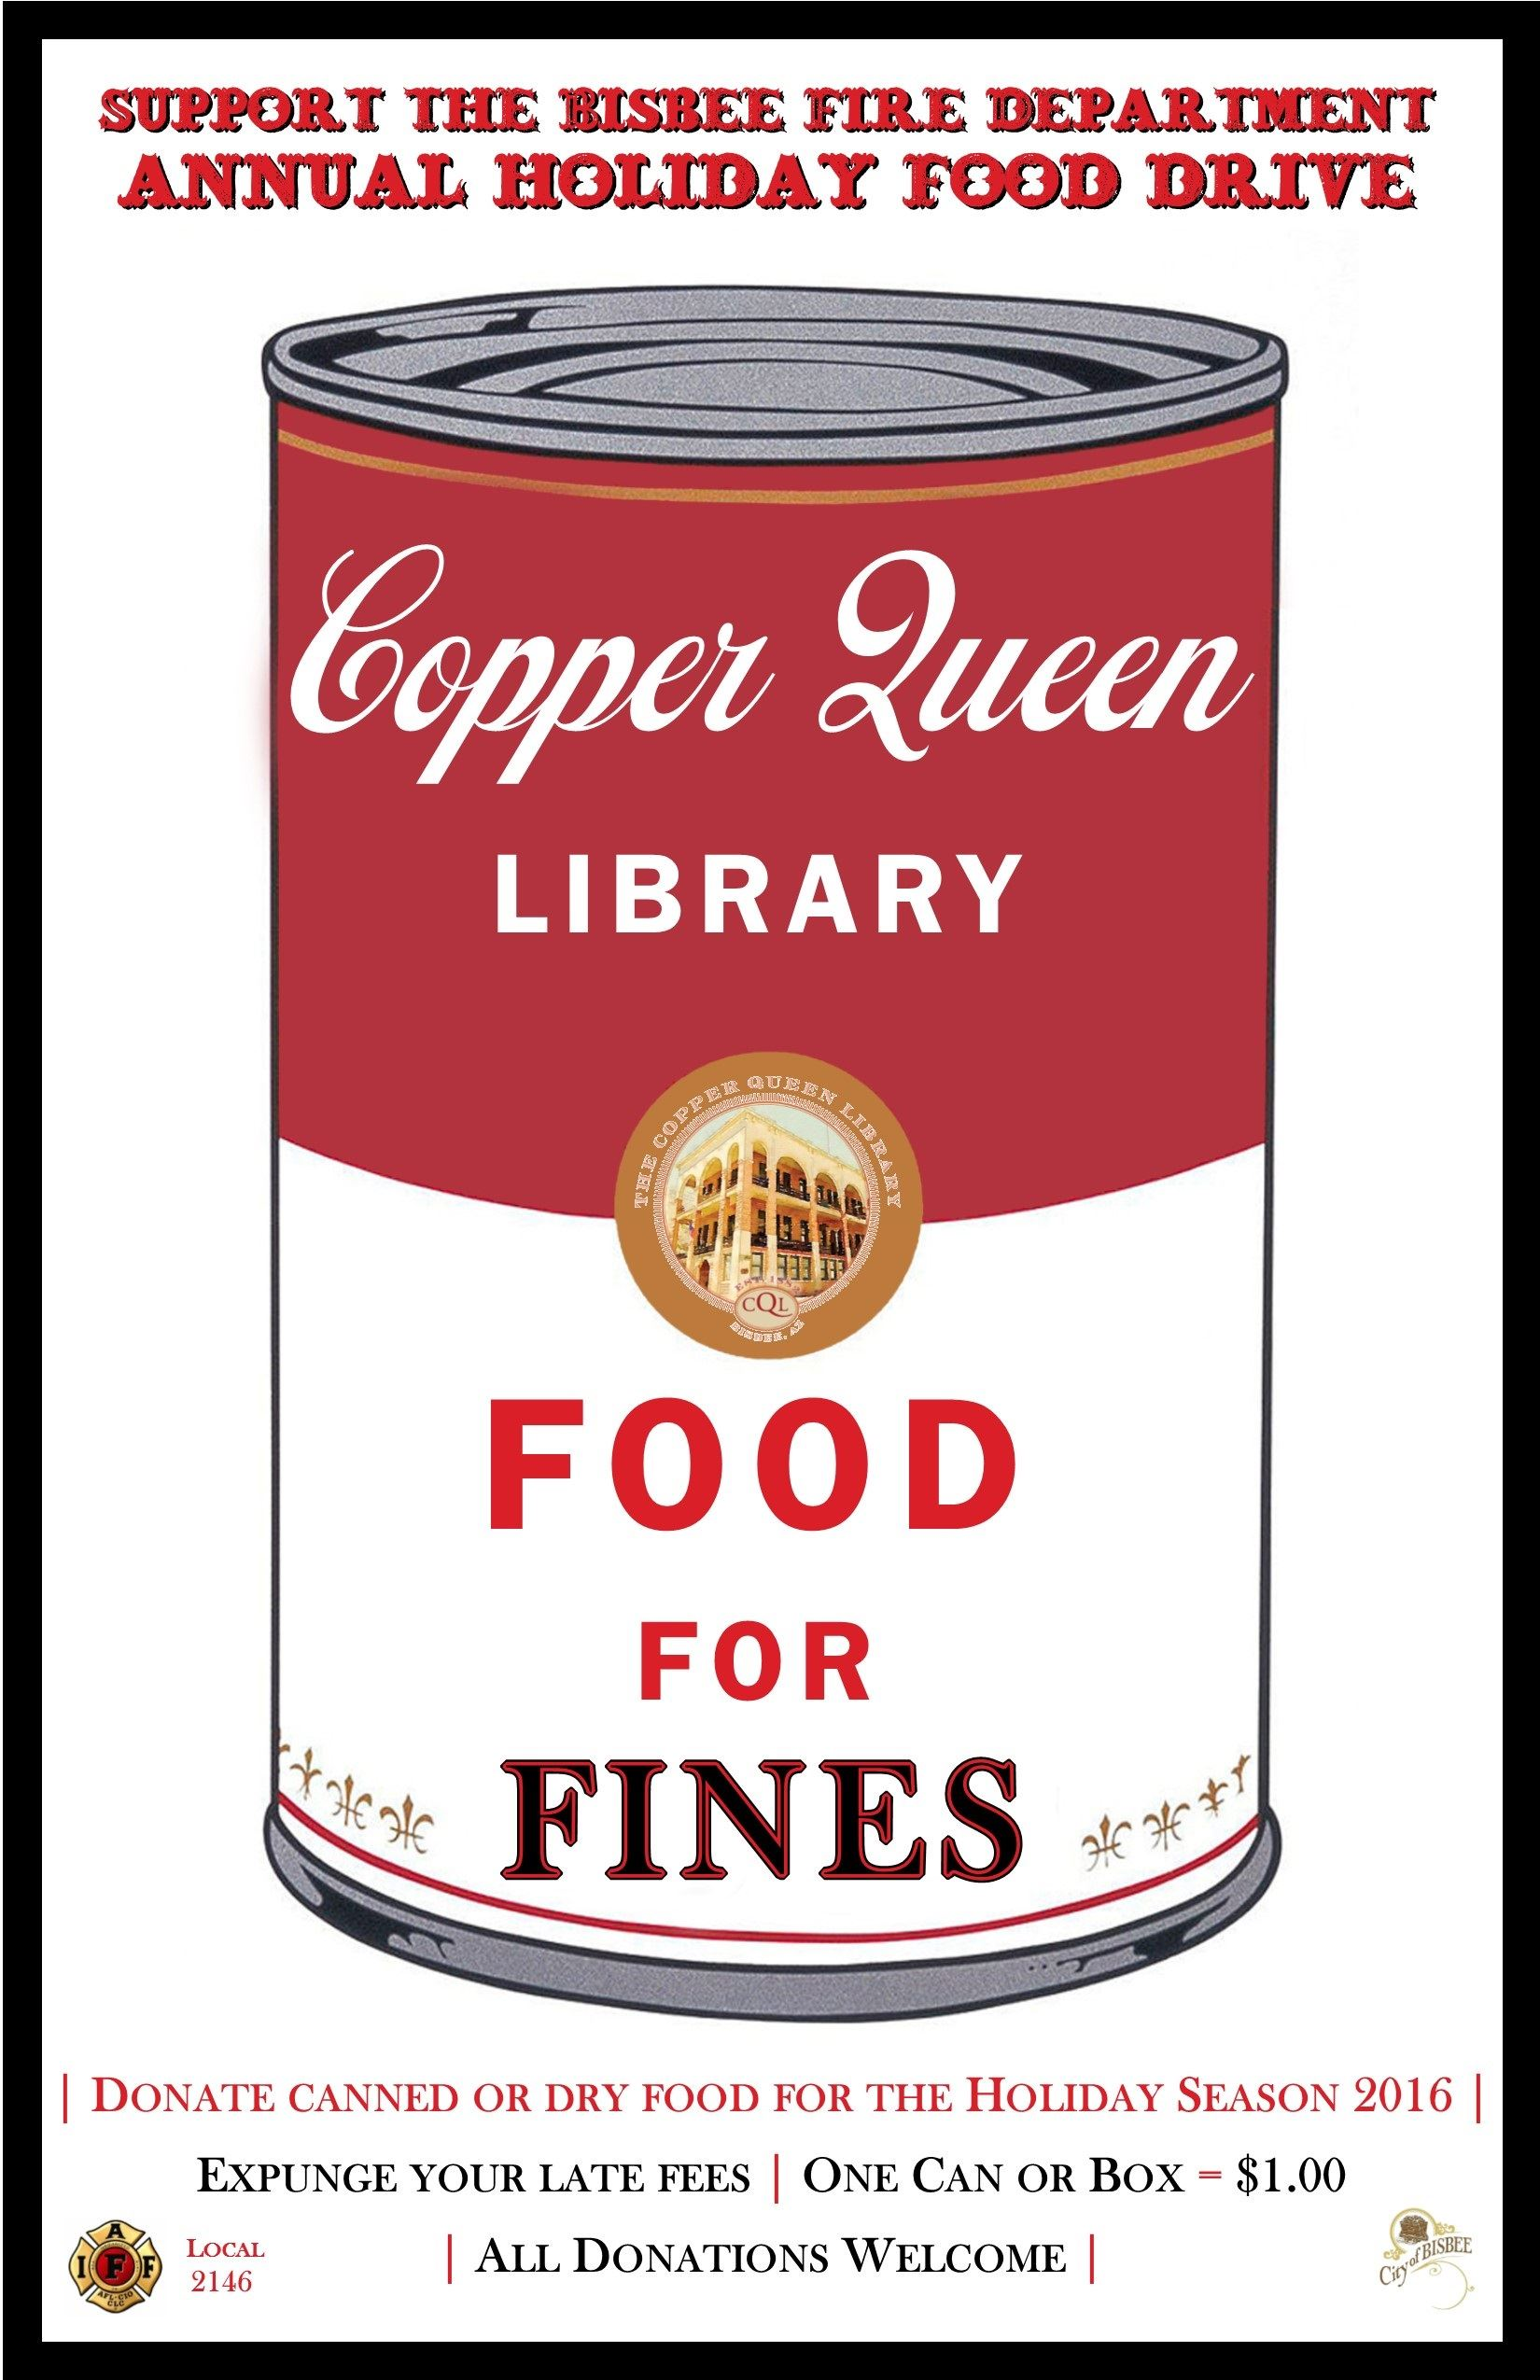 FOOD FOR FINES DEC 2016 11 X 17